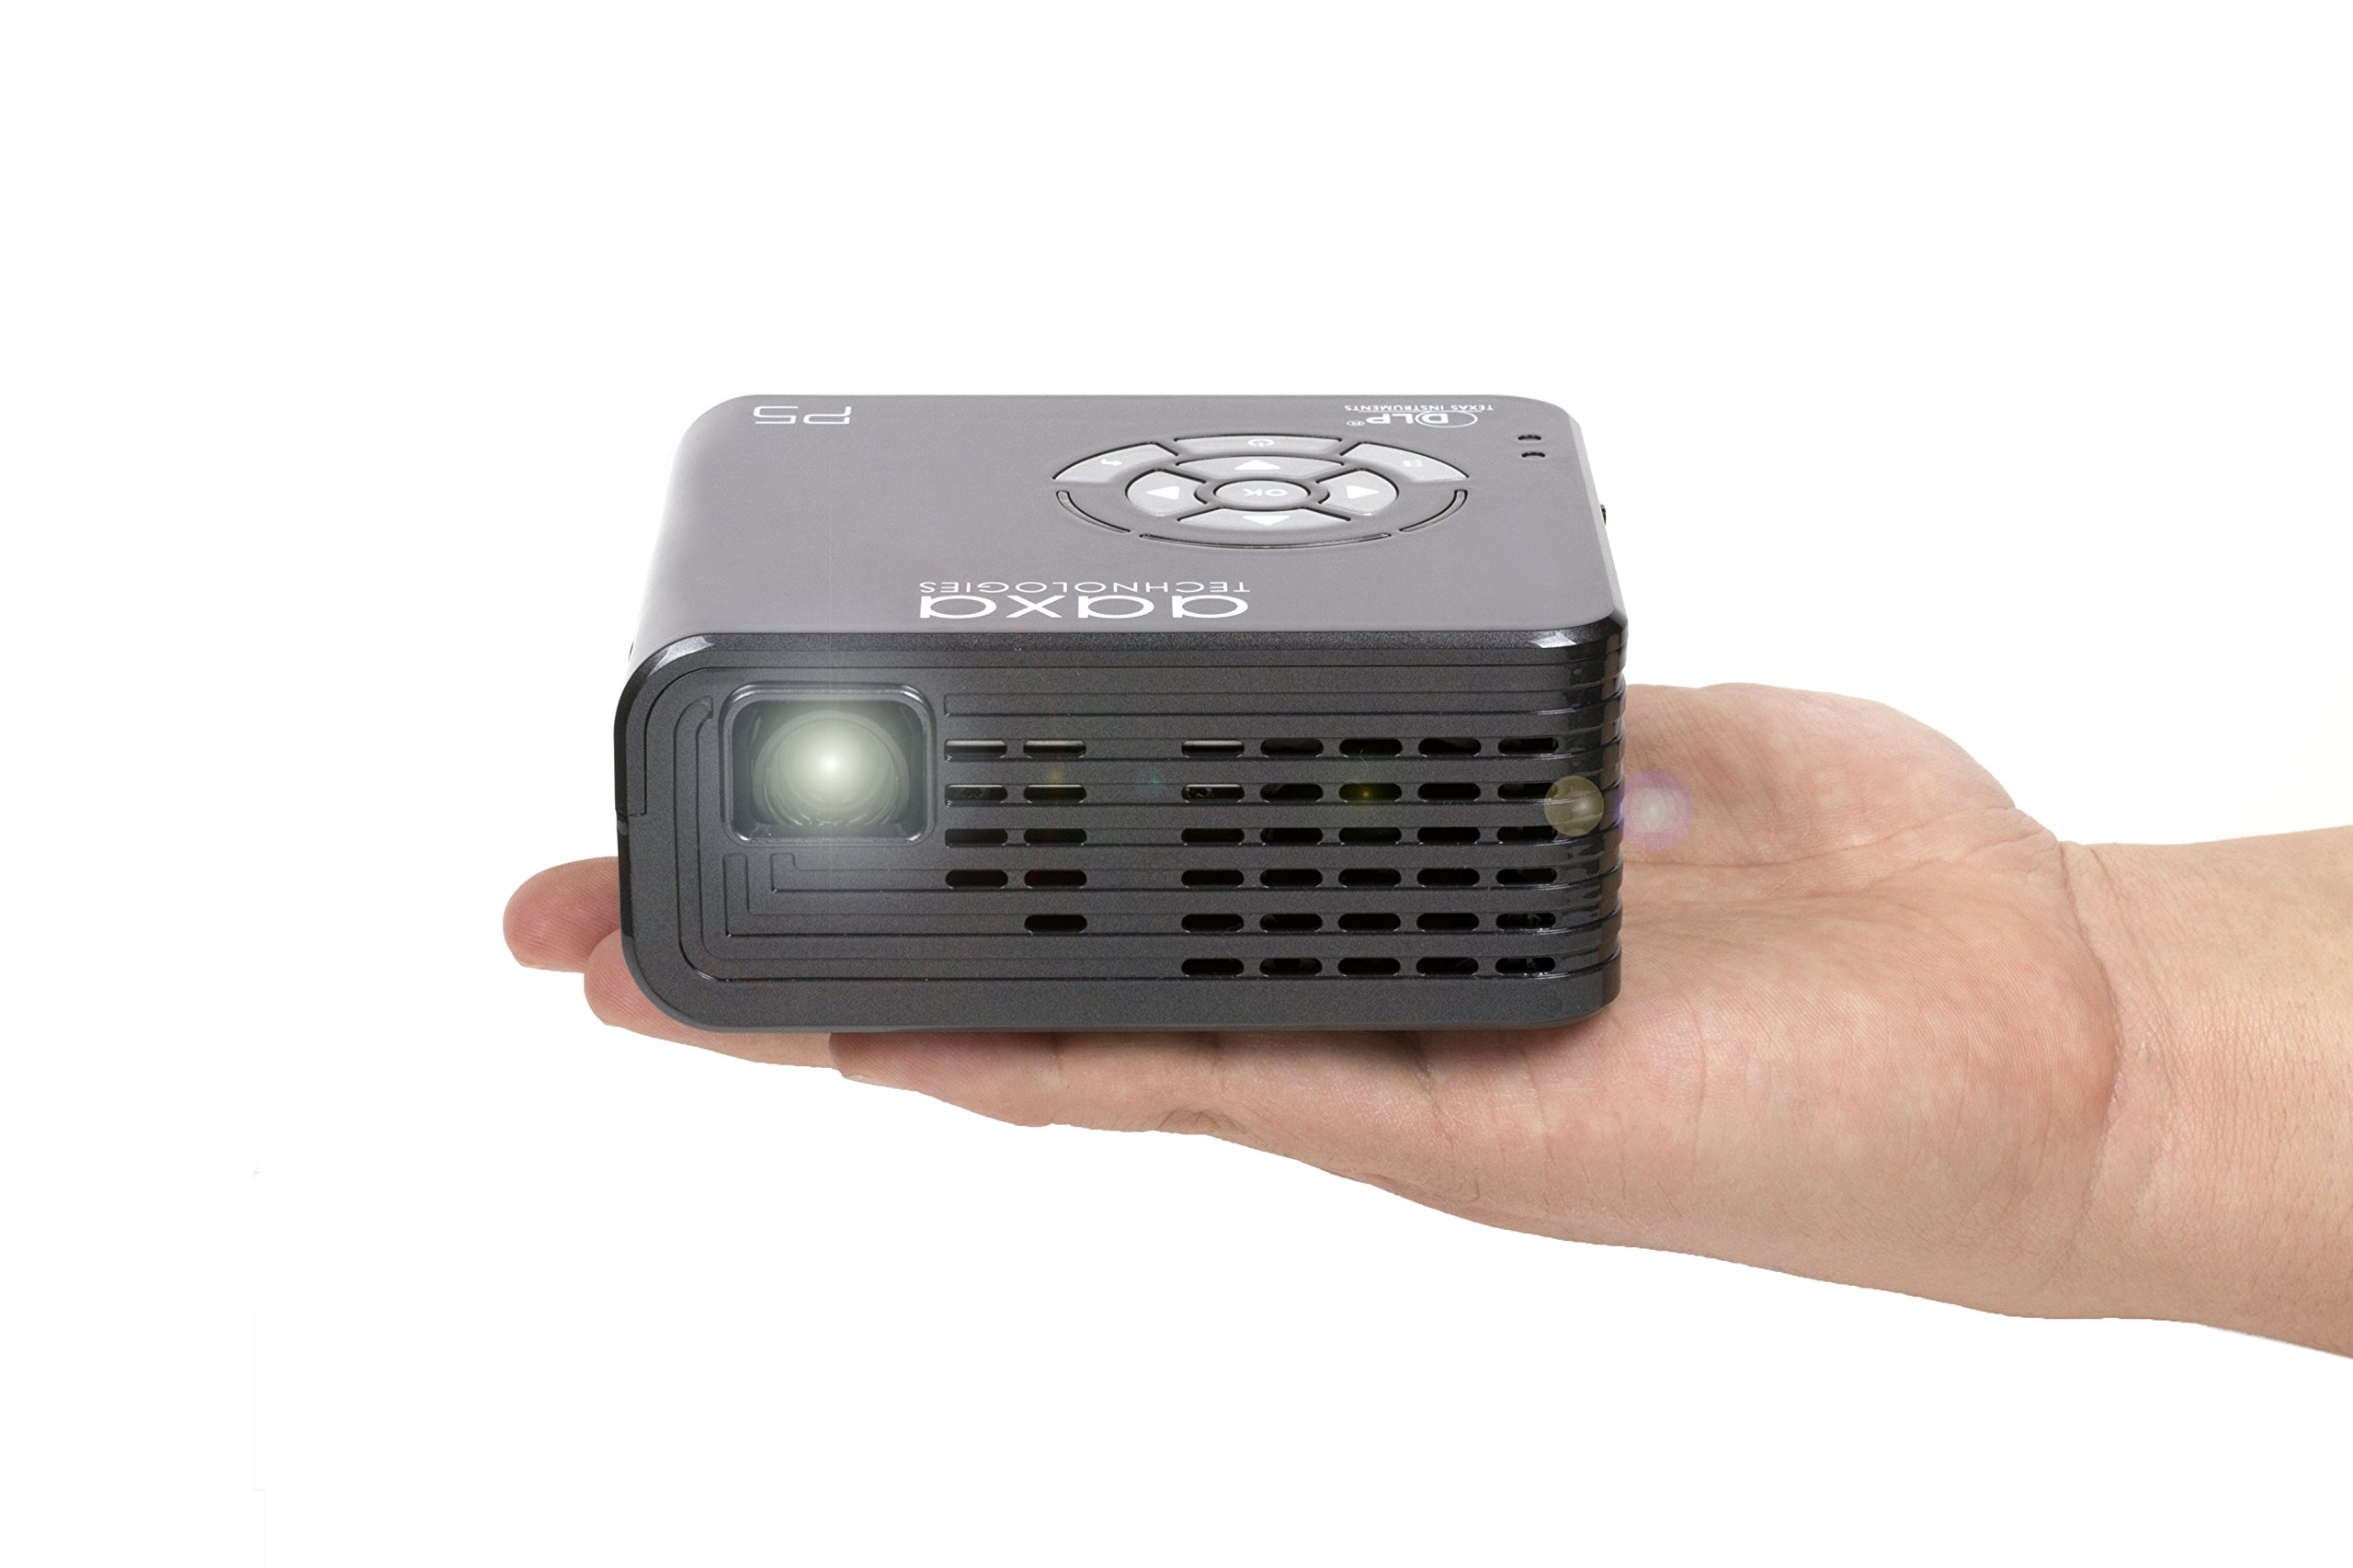 AAXA P5 LED Portable Pico Projector, 300 Lumen, 1280x720P HD Resolution, 135 Min Battery, 20,000 Hour LED, Media Player, Business by AAXA Technologies